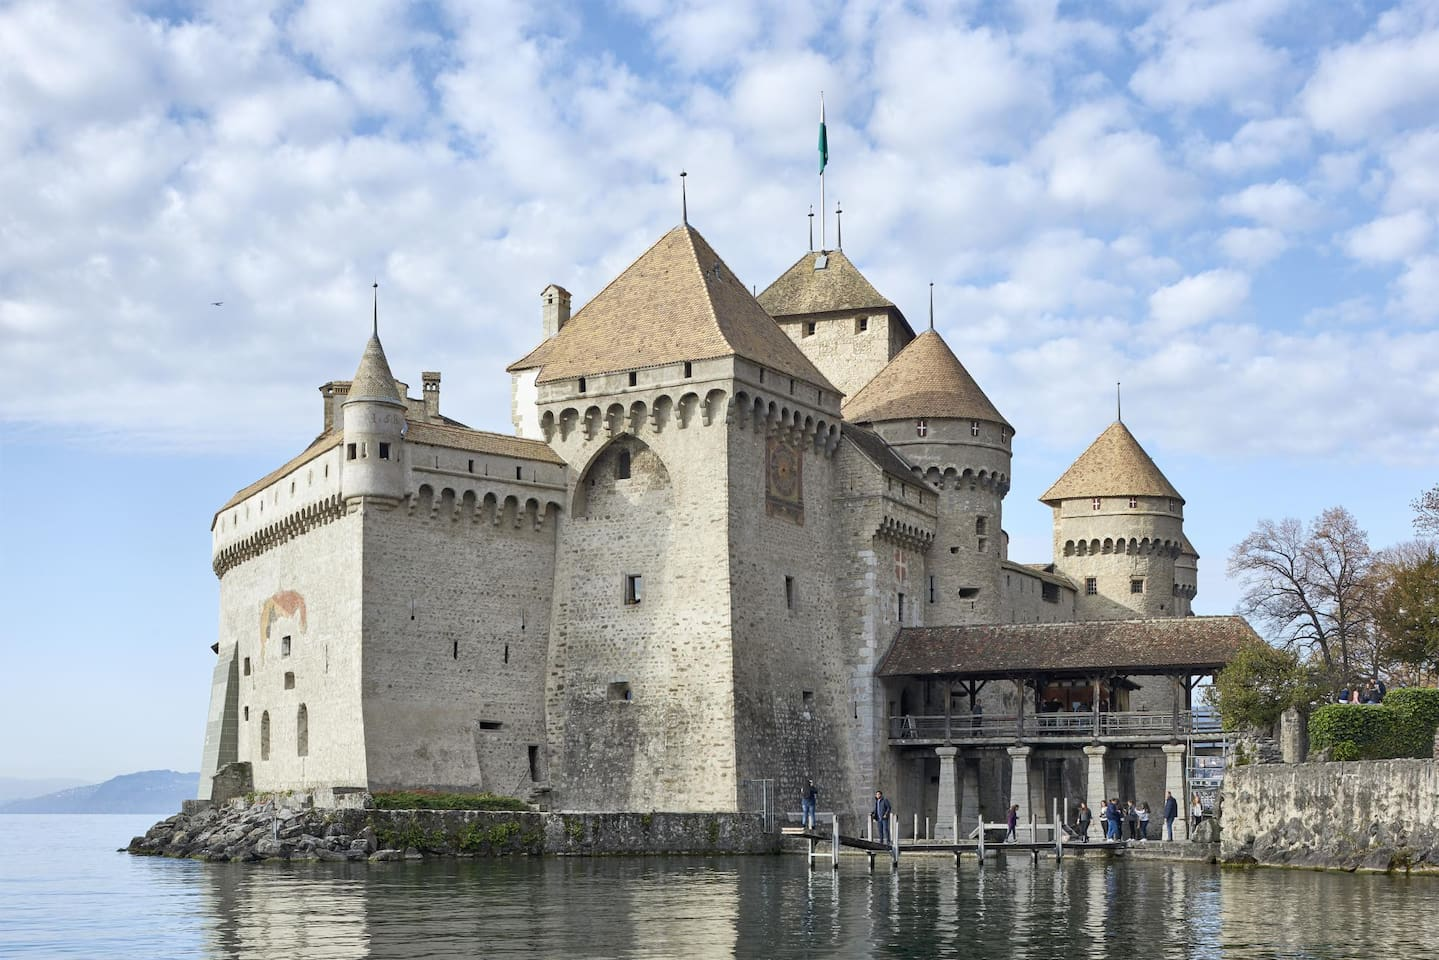 The chateau de Chillon (only 15 minutes by car).